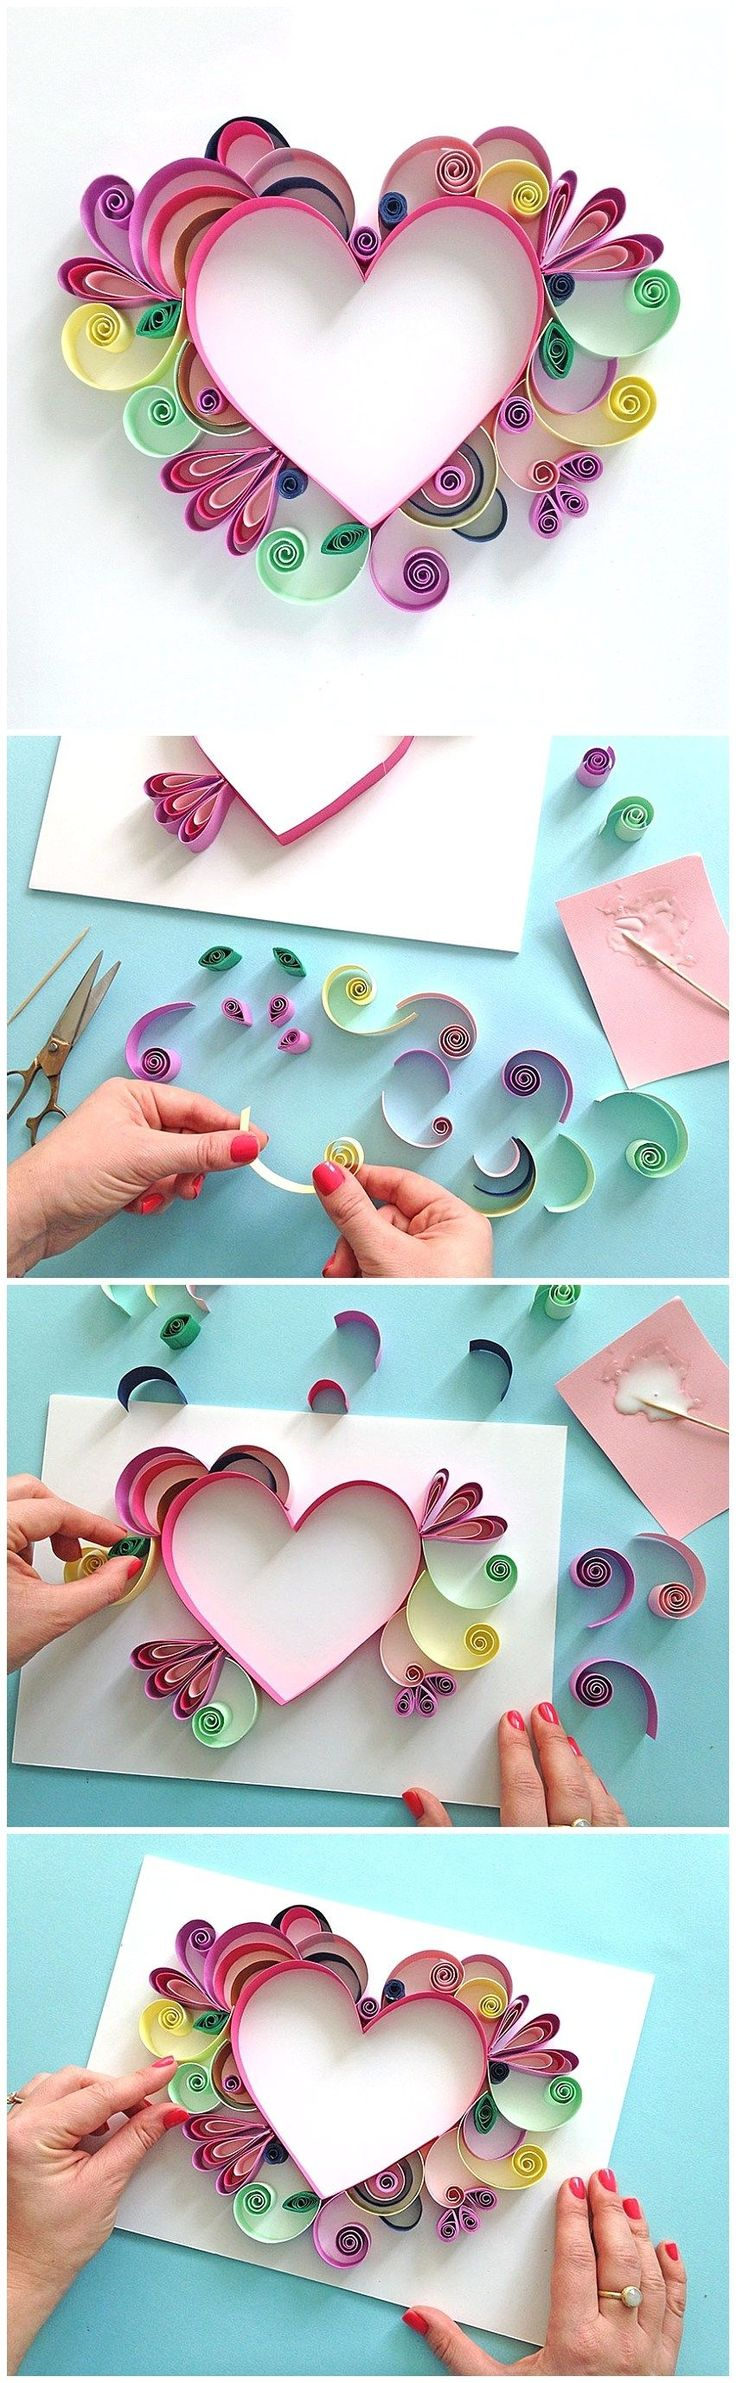 Learn How to Quill a darling Heart Shaped Mother's Day Paper Craft Gift Idea...